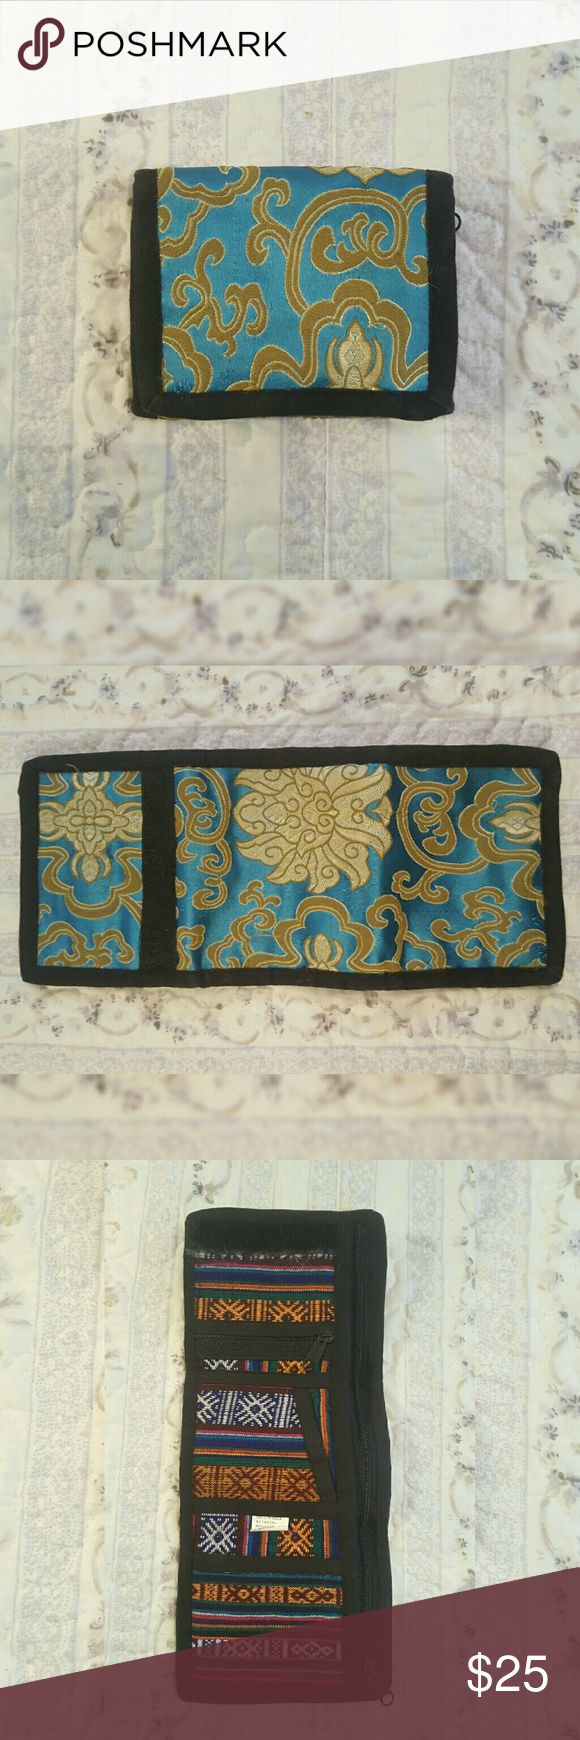 Gorgeous Boho Tribal Handmade Wallet Made in India by Tibetan refugees. Good condition. Some loose threads. Bags Wallets